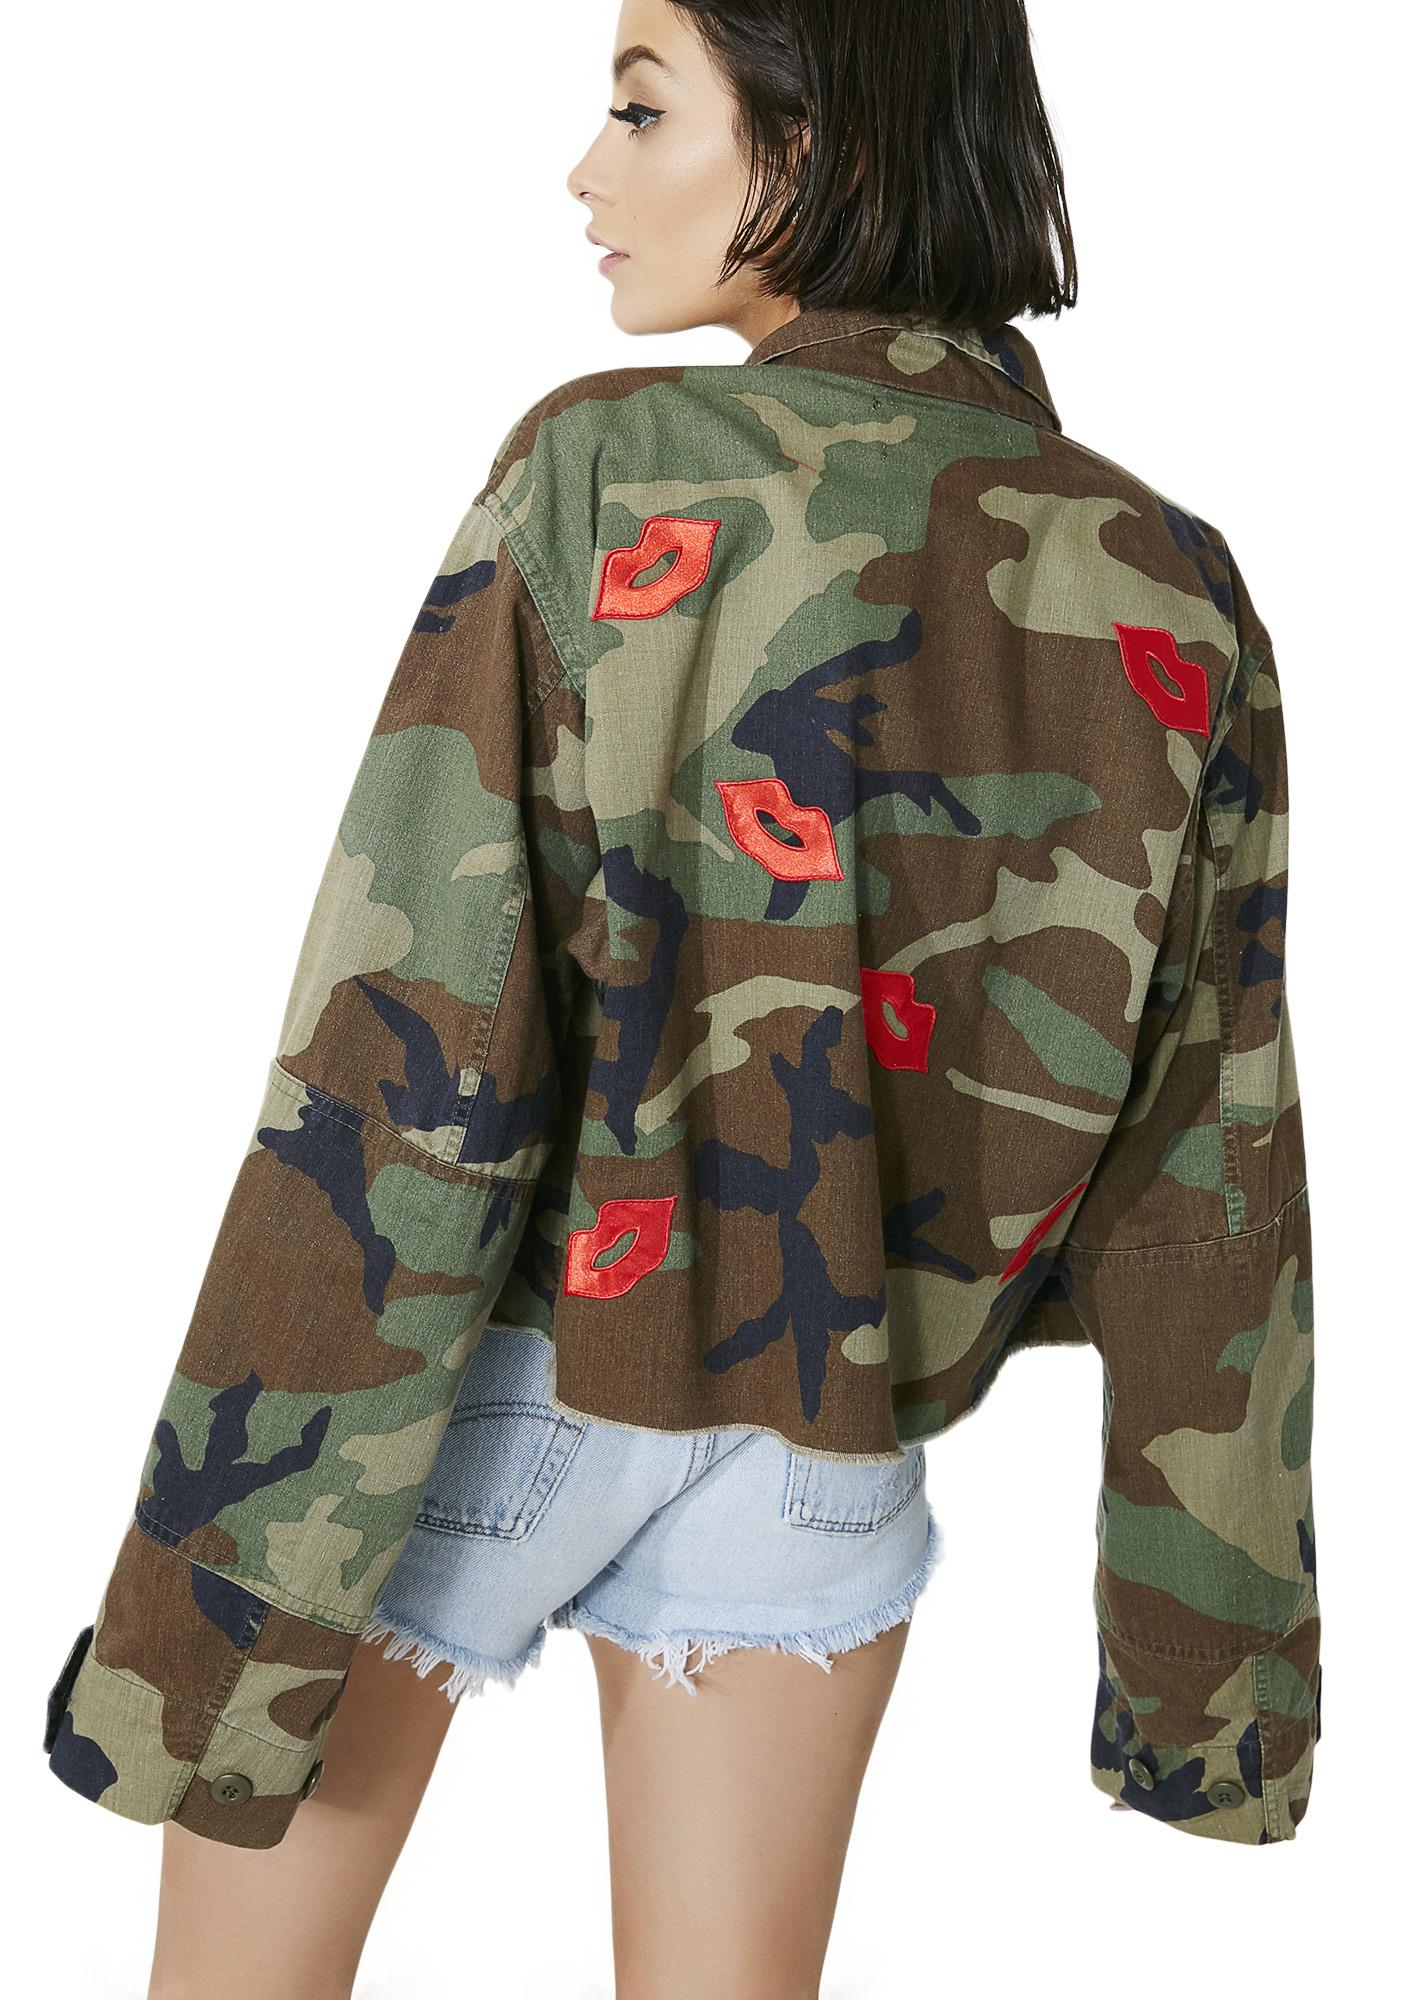 American Vintage Lip Patches Camo Jacket